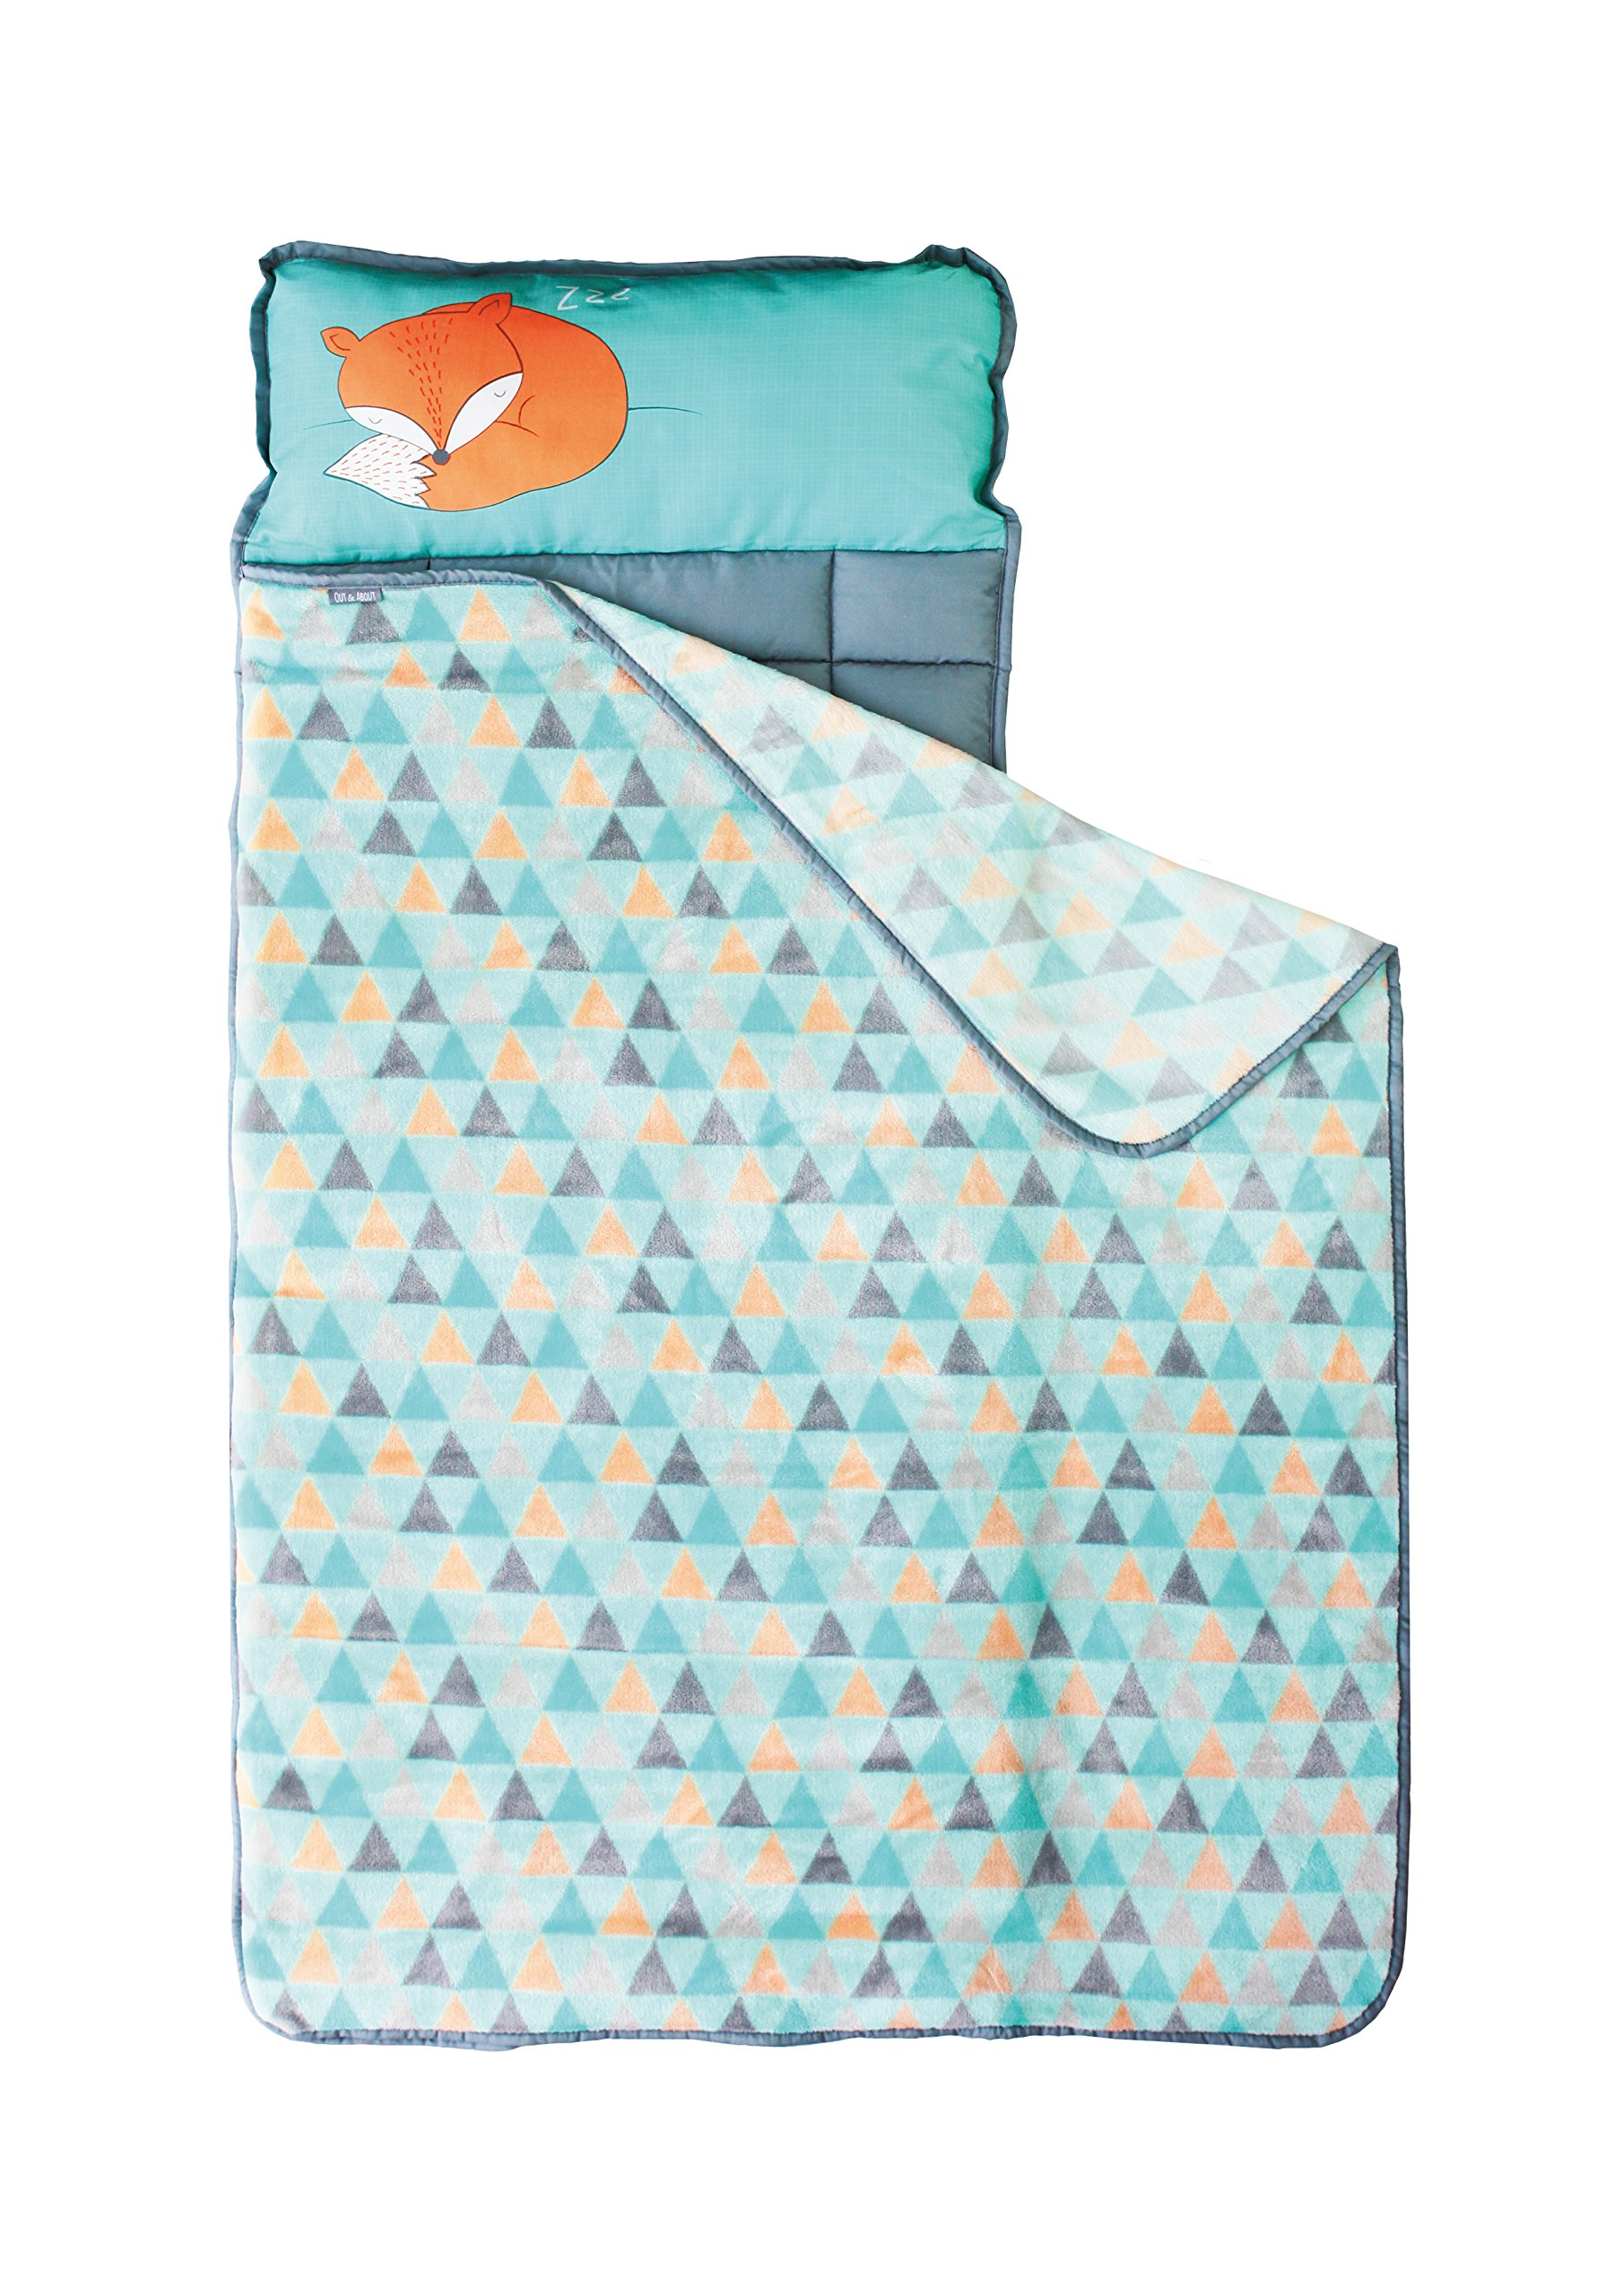 Nap Mats for Preschool Kinder Daycare - Toddler Kids Portable Sleeping Mat with Blanket + Pillow - Perfect for Boys or Girls (Sleepy Fox) by Homezy